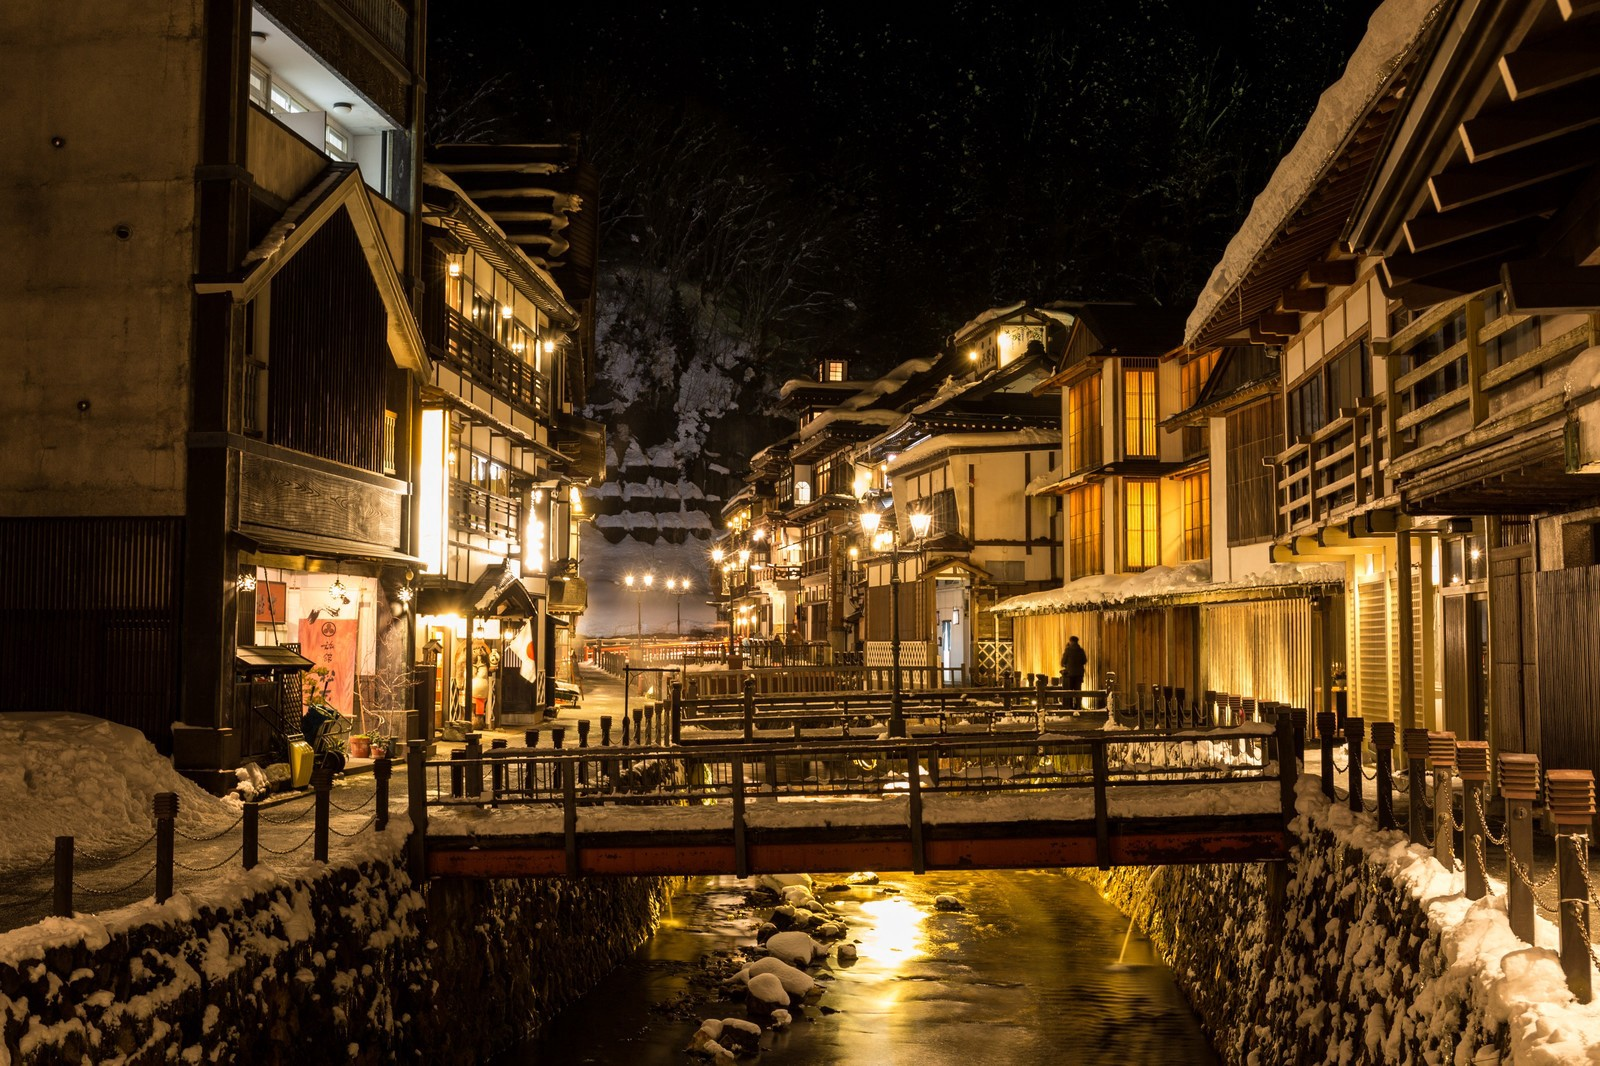 Ginzan Onsen: one of the most scenic Onsen towns in Japan